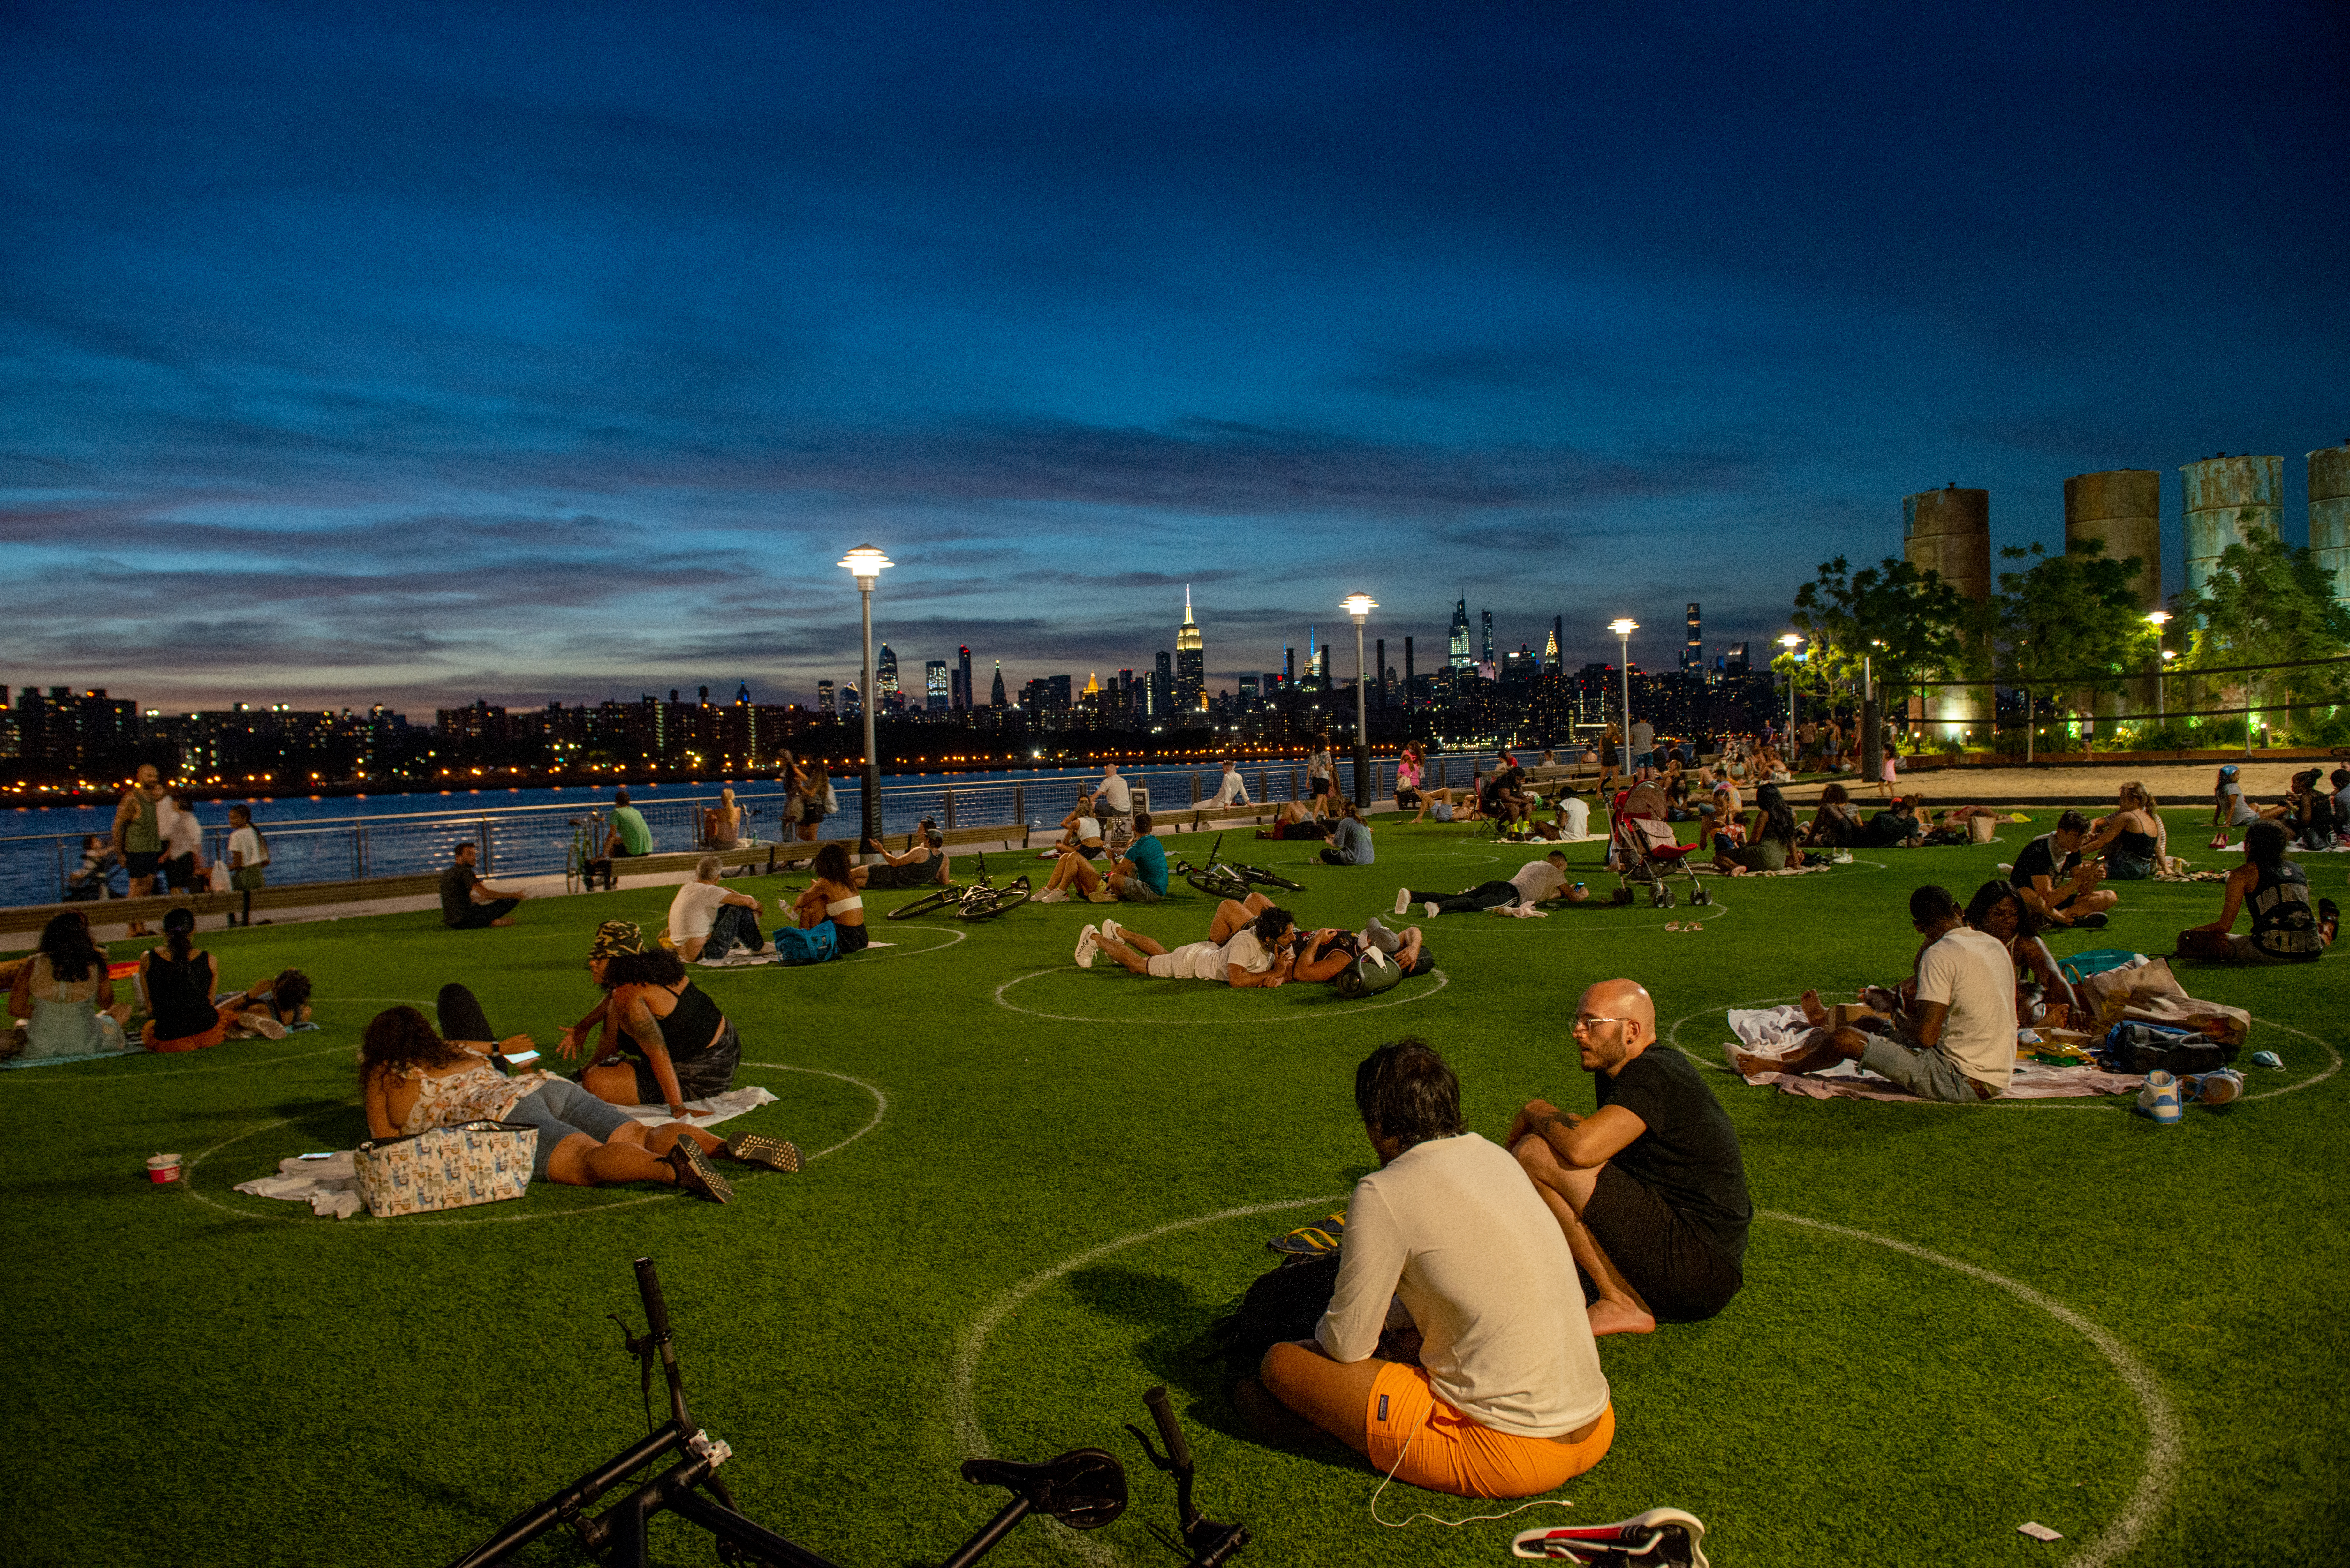 People sit in prescribed circles at a New York City park.